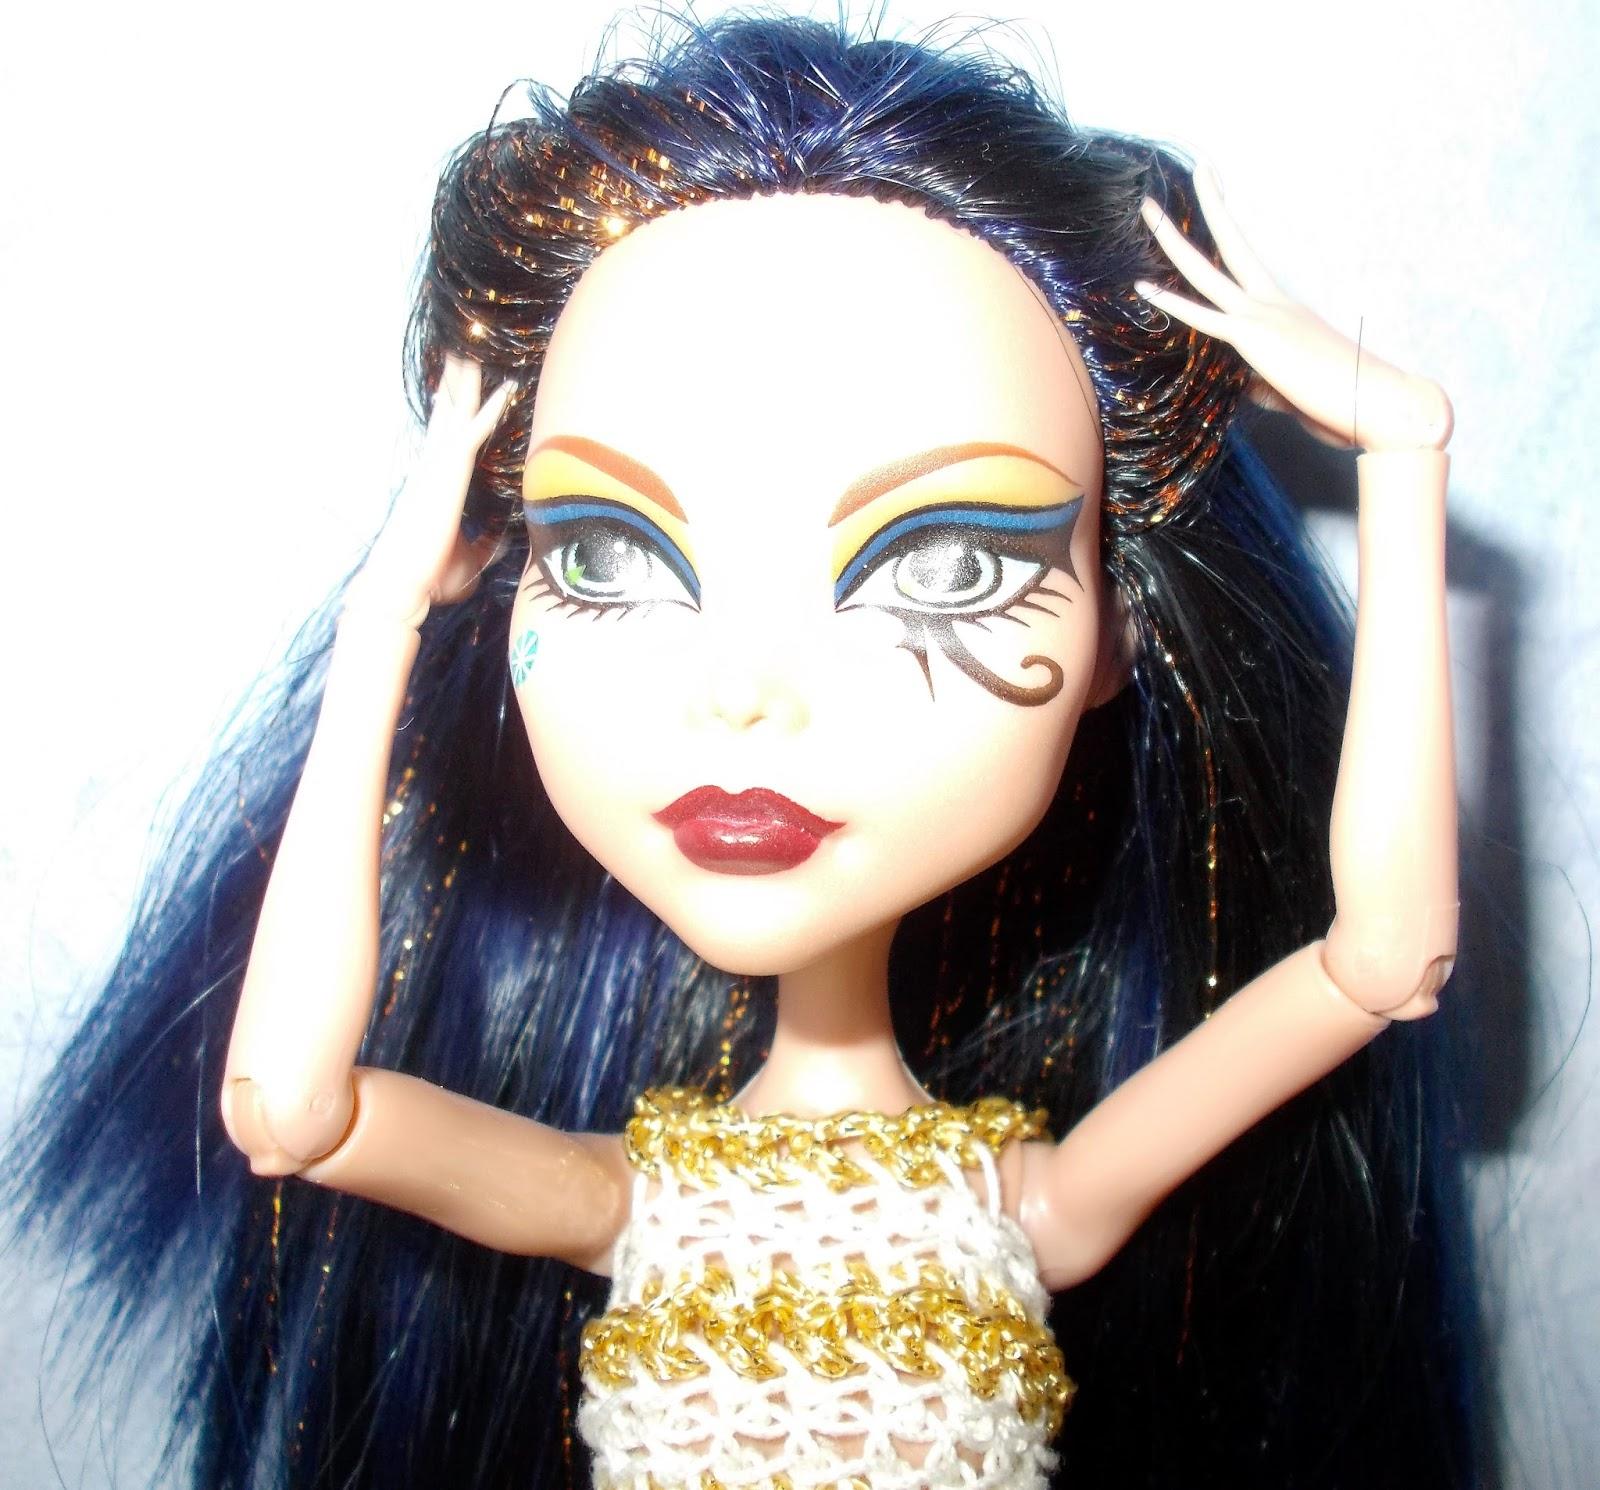 Calaminthes Clawdeen Fashiondoll Friends September 2016